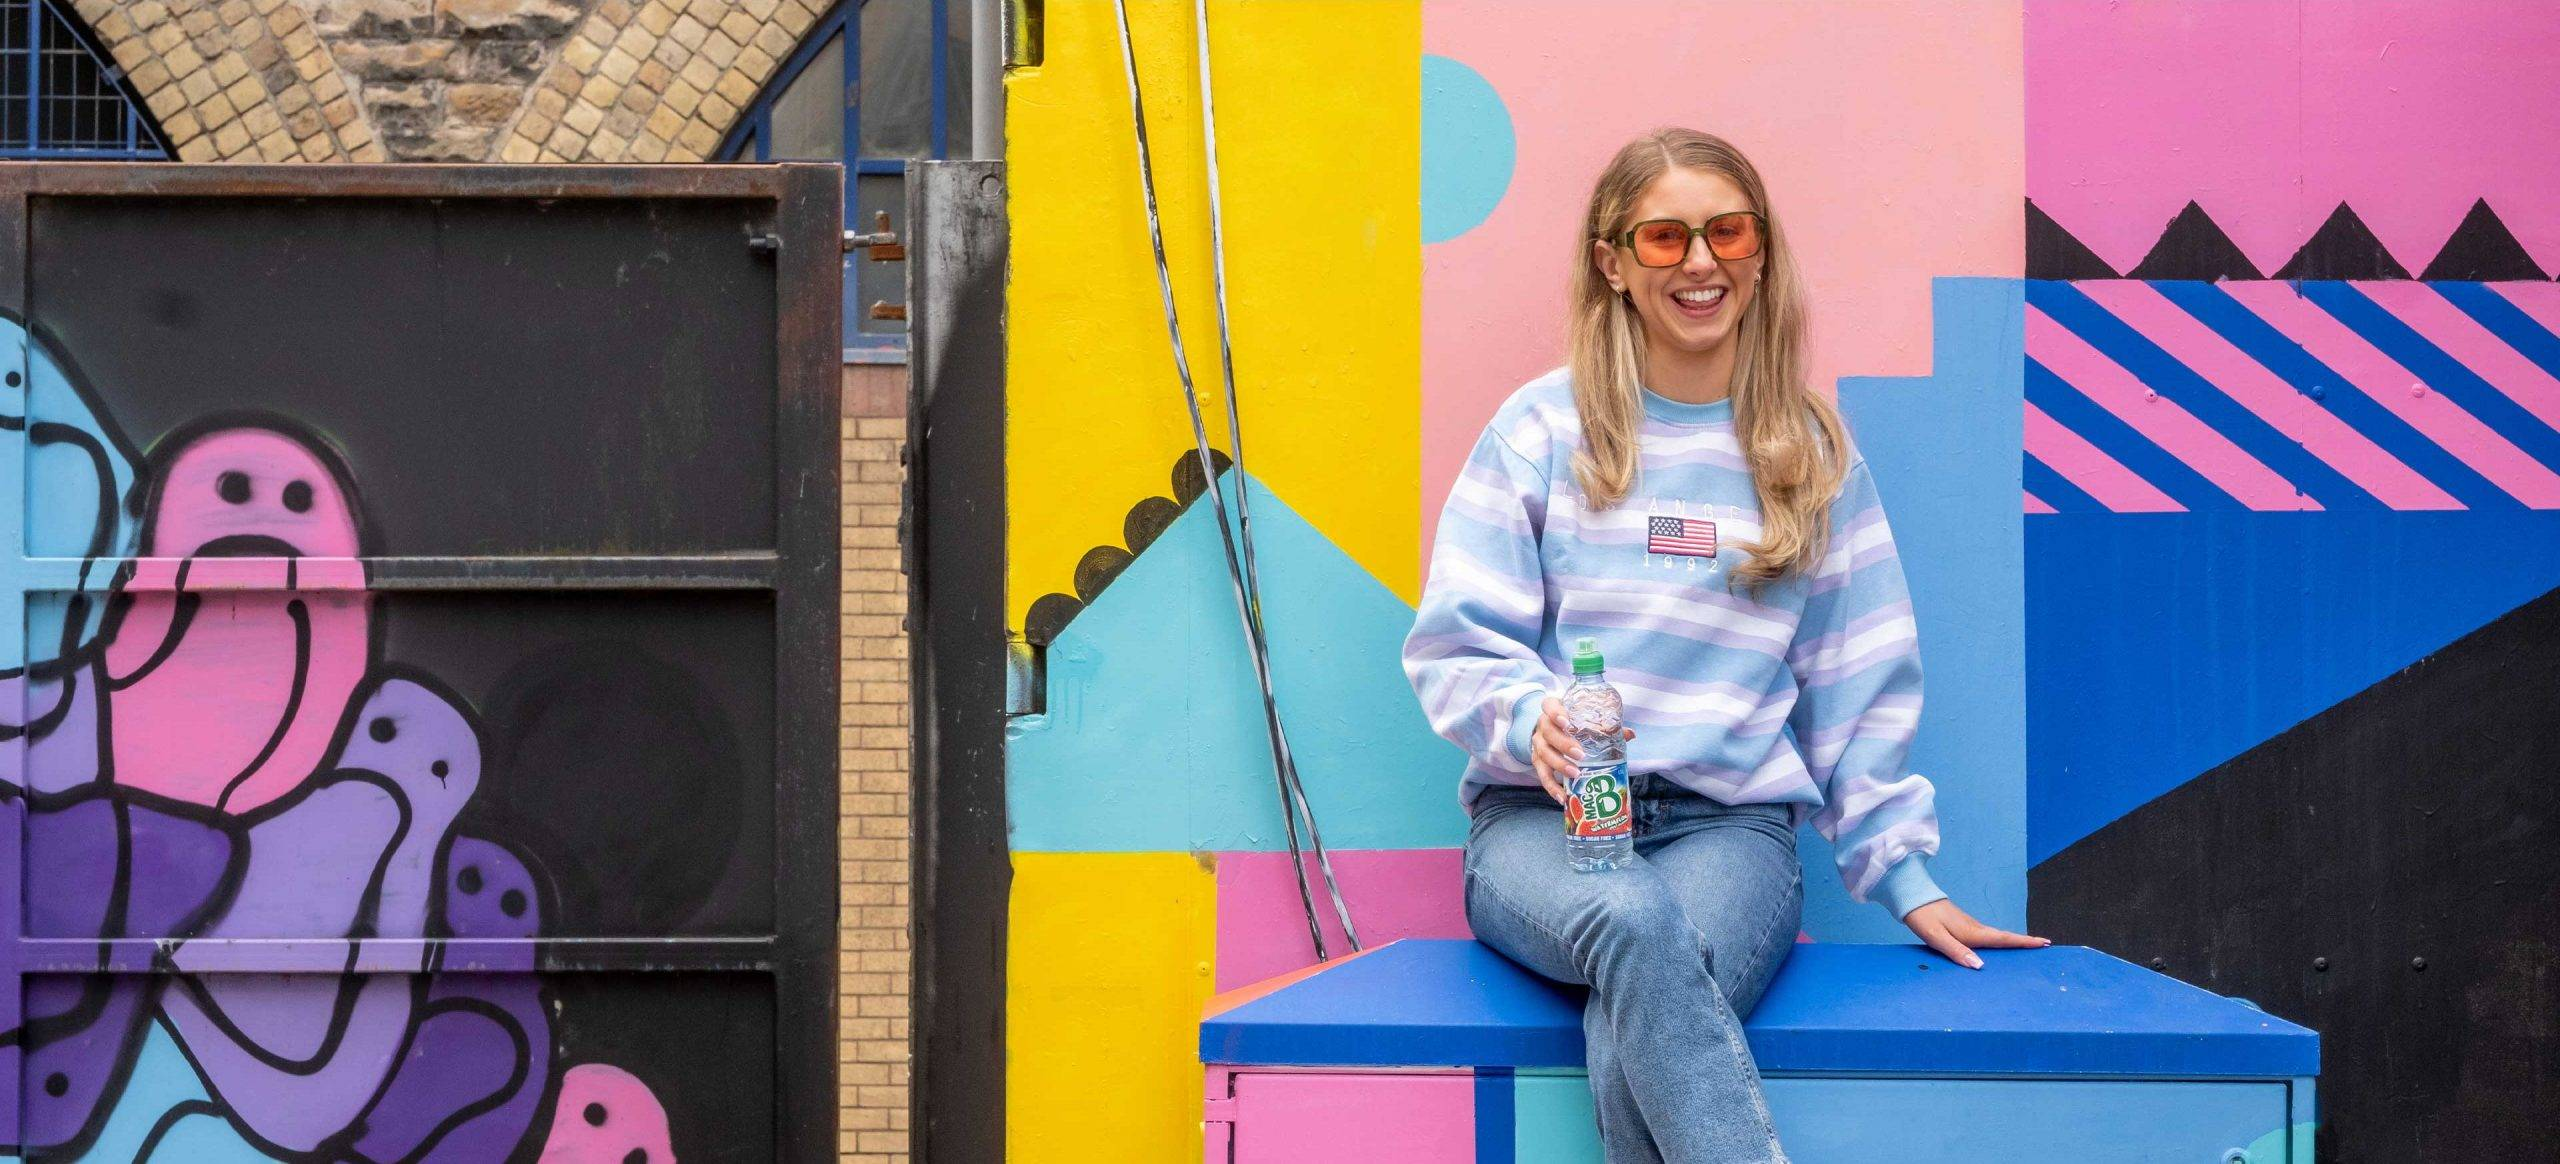 A young woman in front of a wall mural wearing sunglasses, laughing and drinking a bottle of Macb Flavoured Spring Water